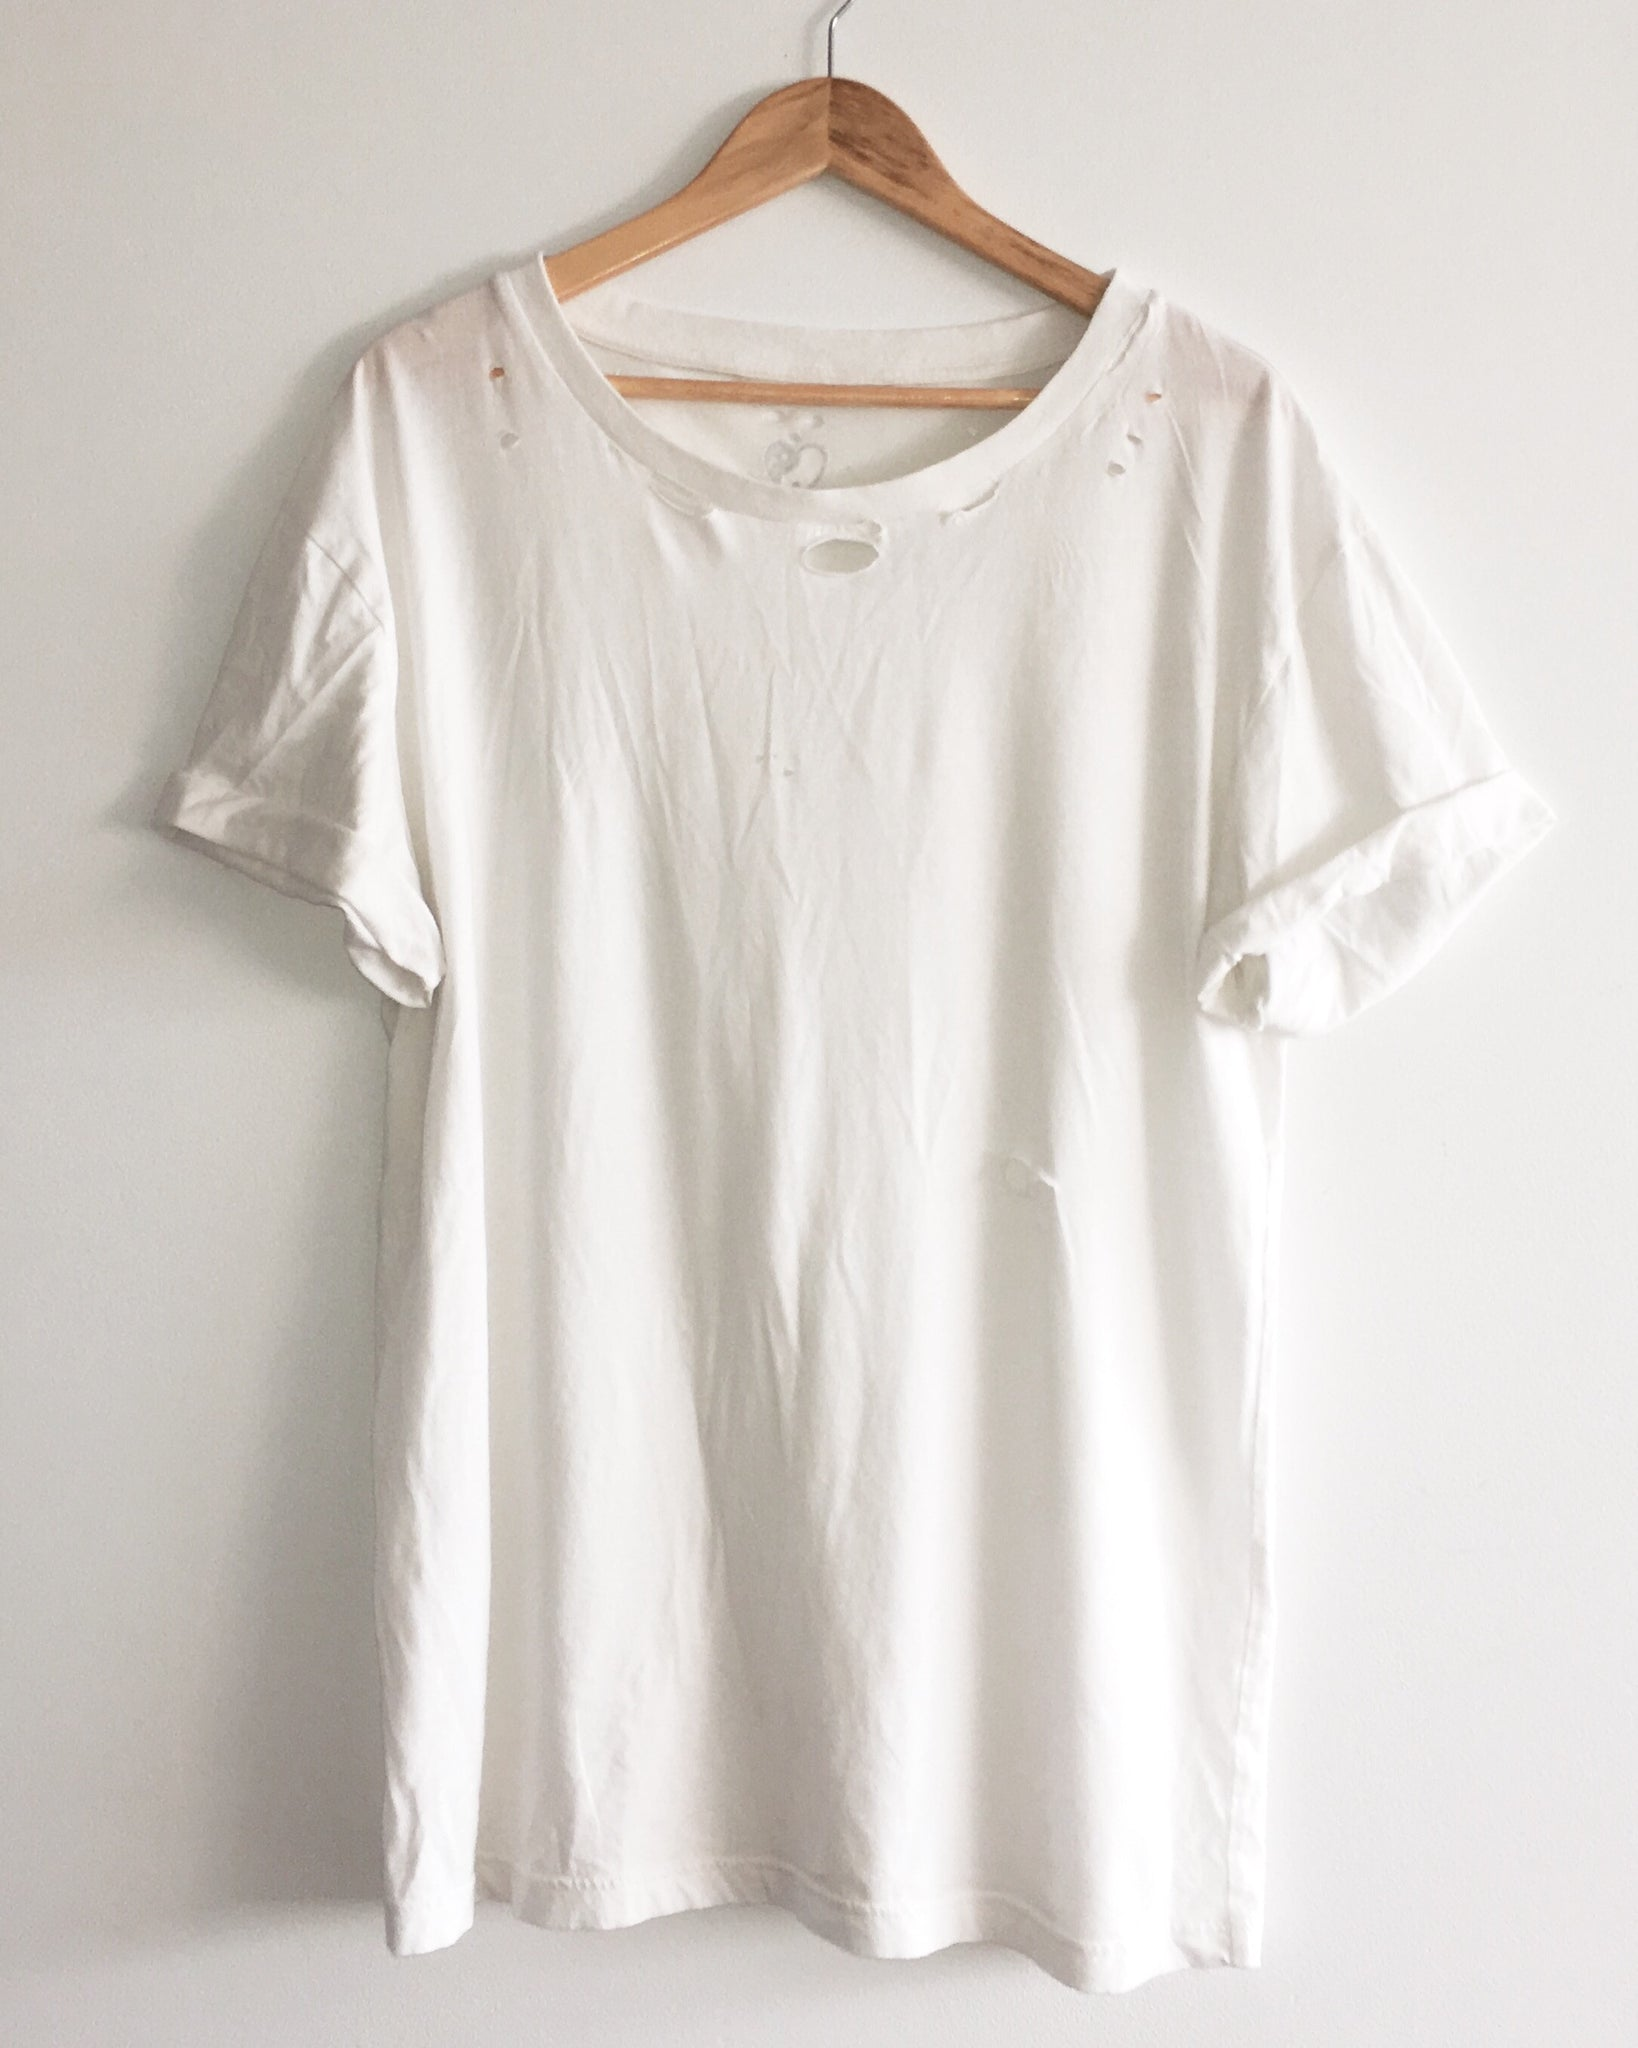 Vintage Style T Shirt - Aged White